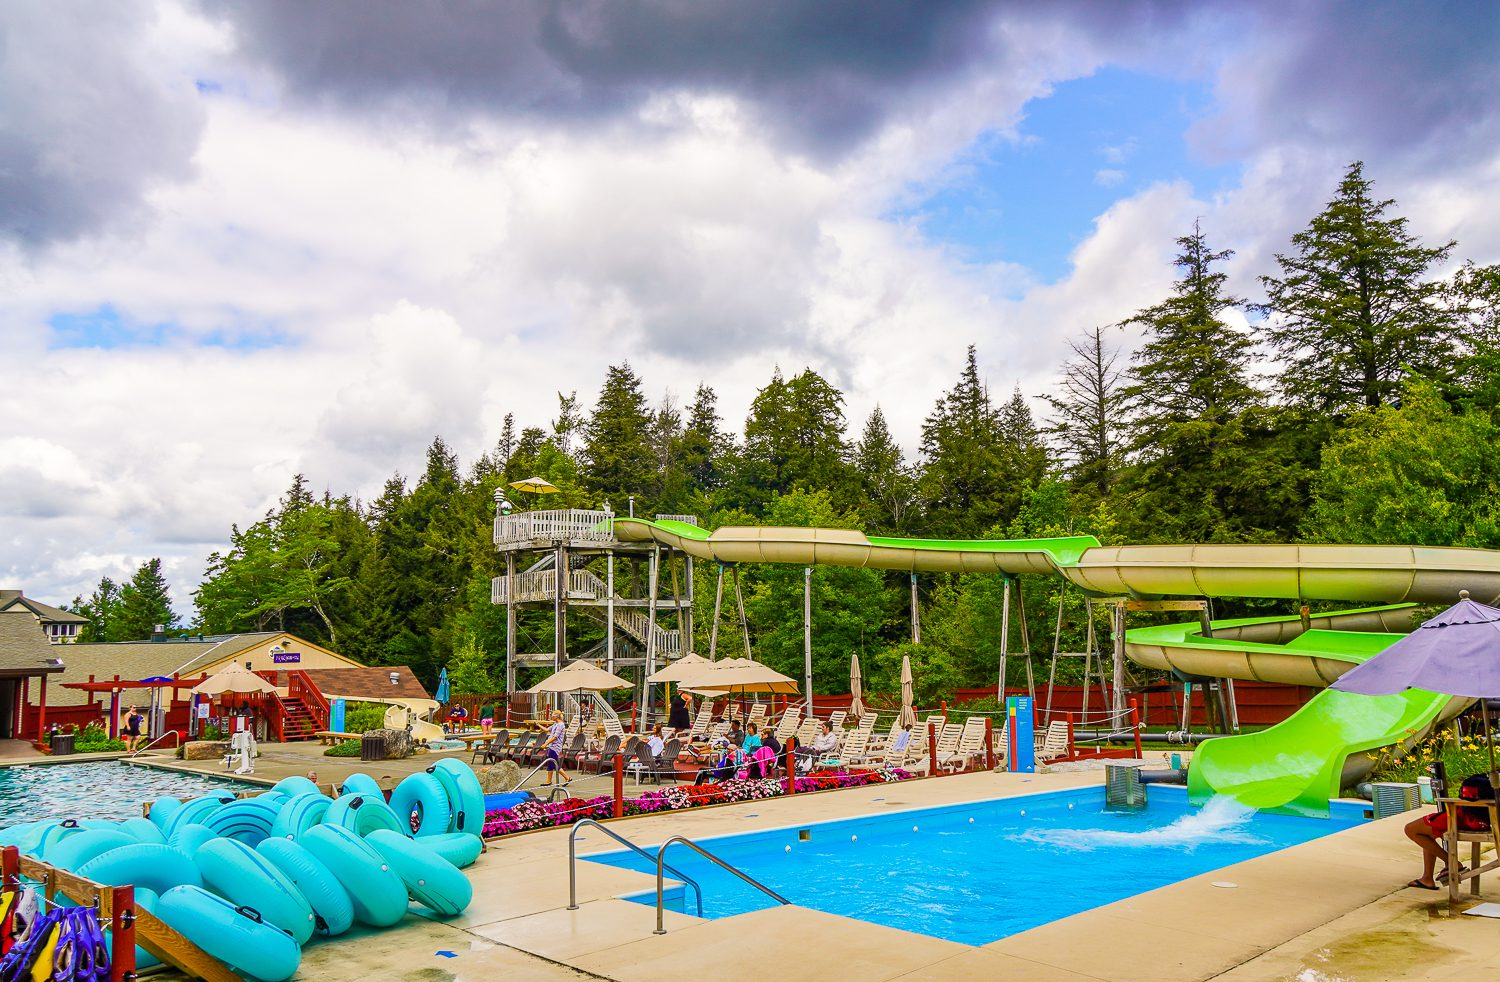 One of 3 giant waterslides at Smuggs.